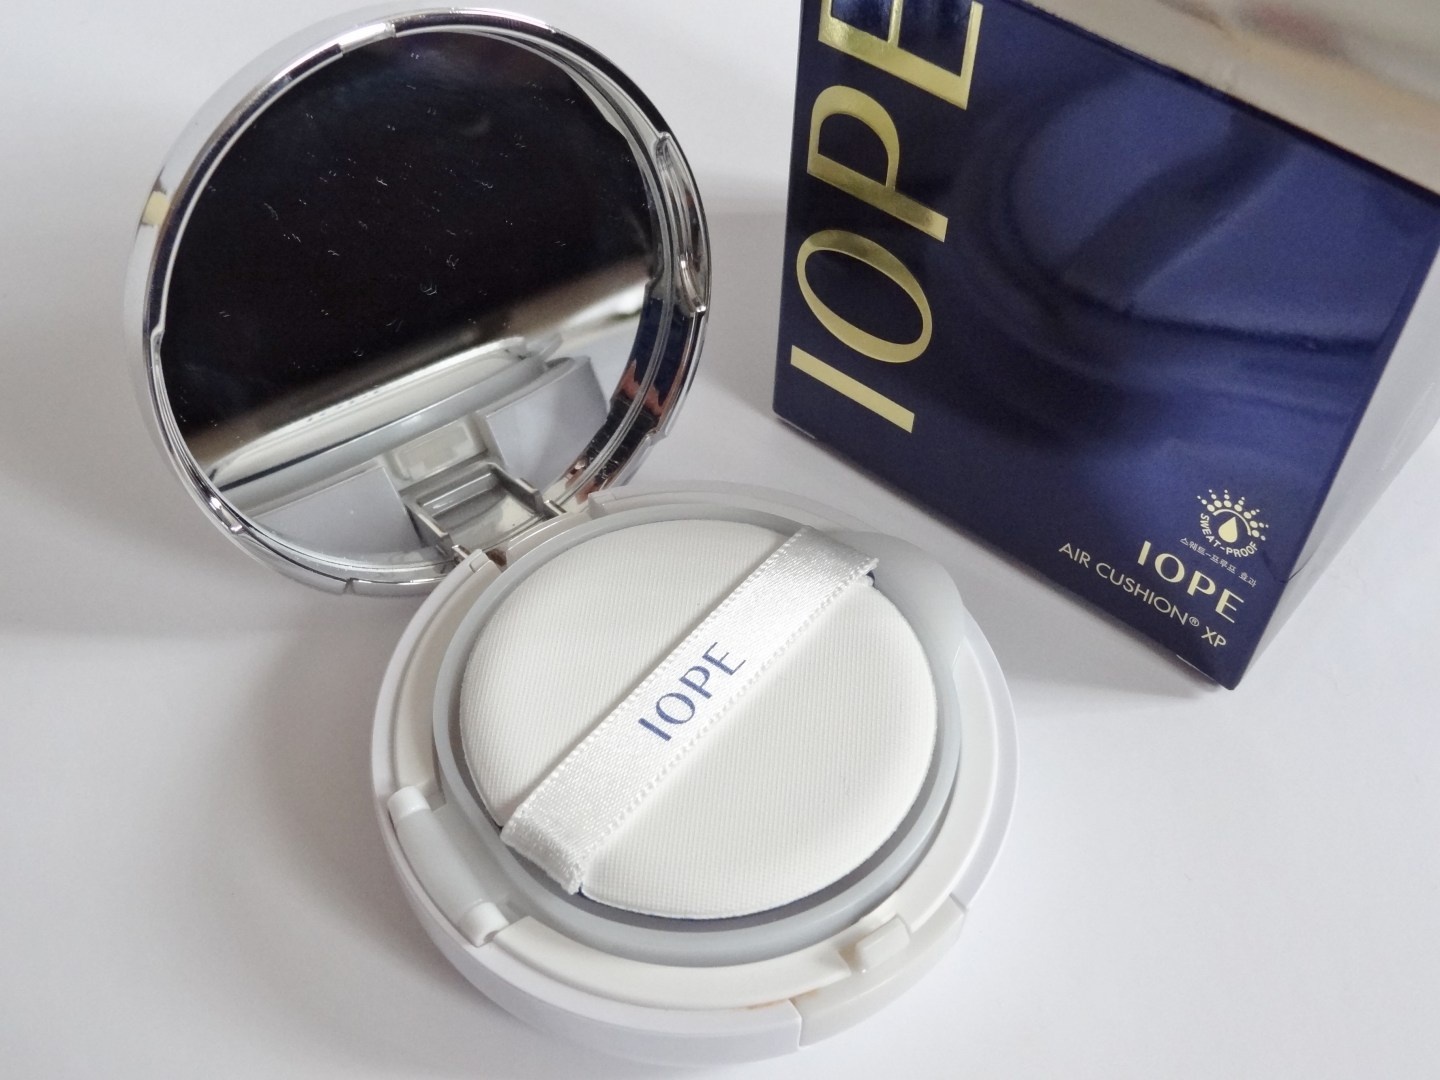 REVIEW: IOPE Air Cushion XP (No.C21 Cover Vanilla)